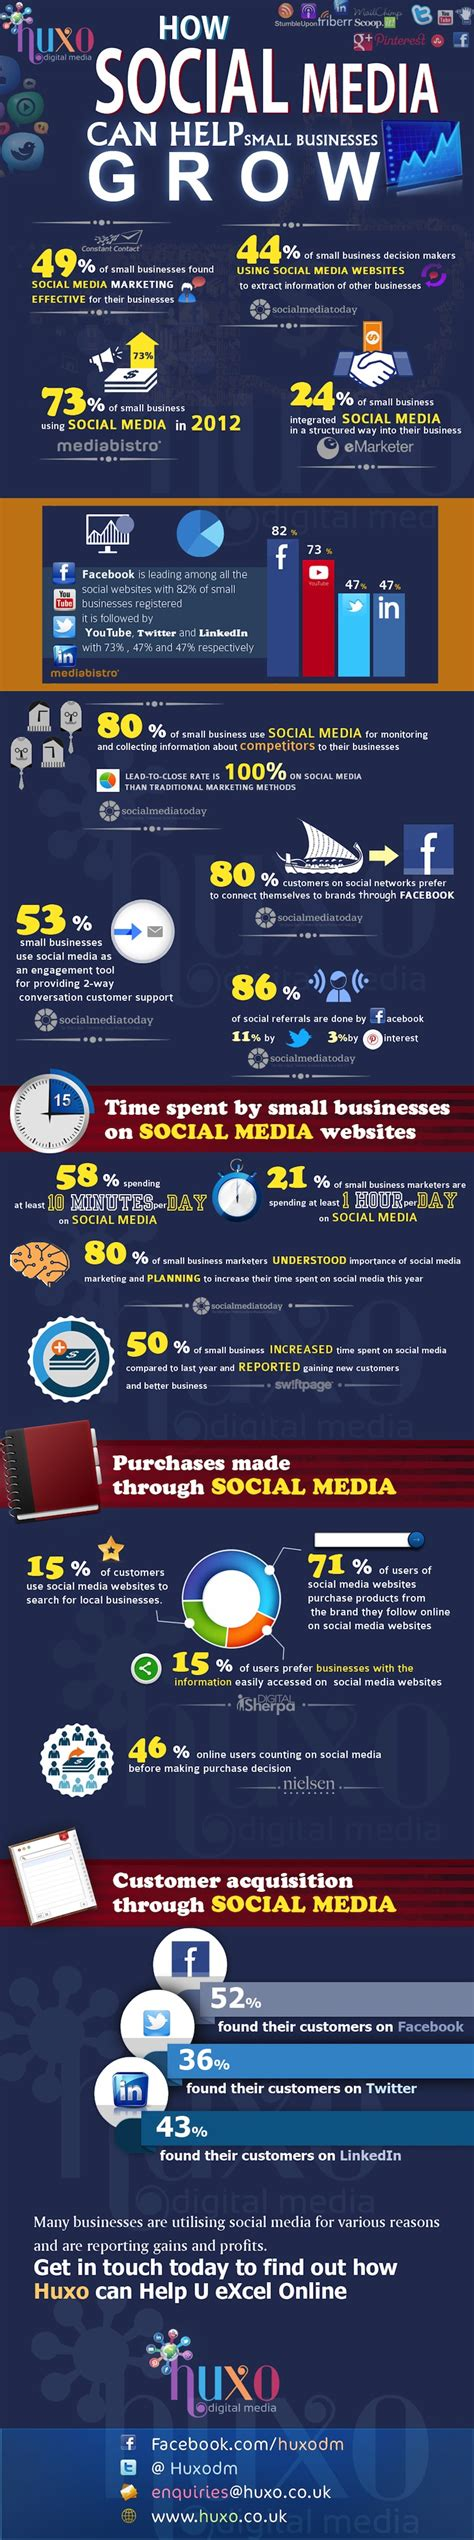 How Social Media Helps Small Business Grow. Graduate School English Action Auto Insurance. California Lemon Law For Used Cars. Personal Injury Attorney Denver Colorado. Free Business Website Google. Best Clothing Website Designs. Contact Resource Management Software. Download Vonage Extensions Emt Online Course. Dual Directional Couplers Spa Online Booking